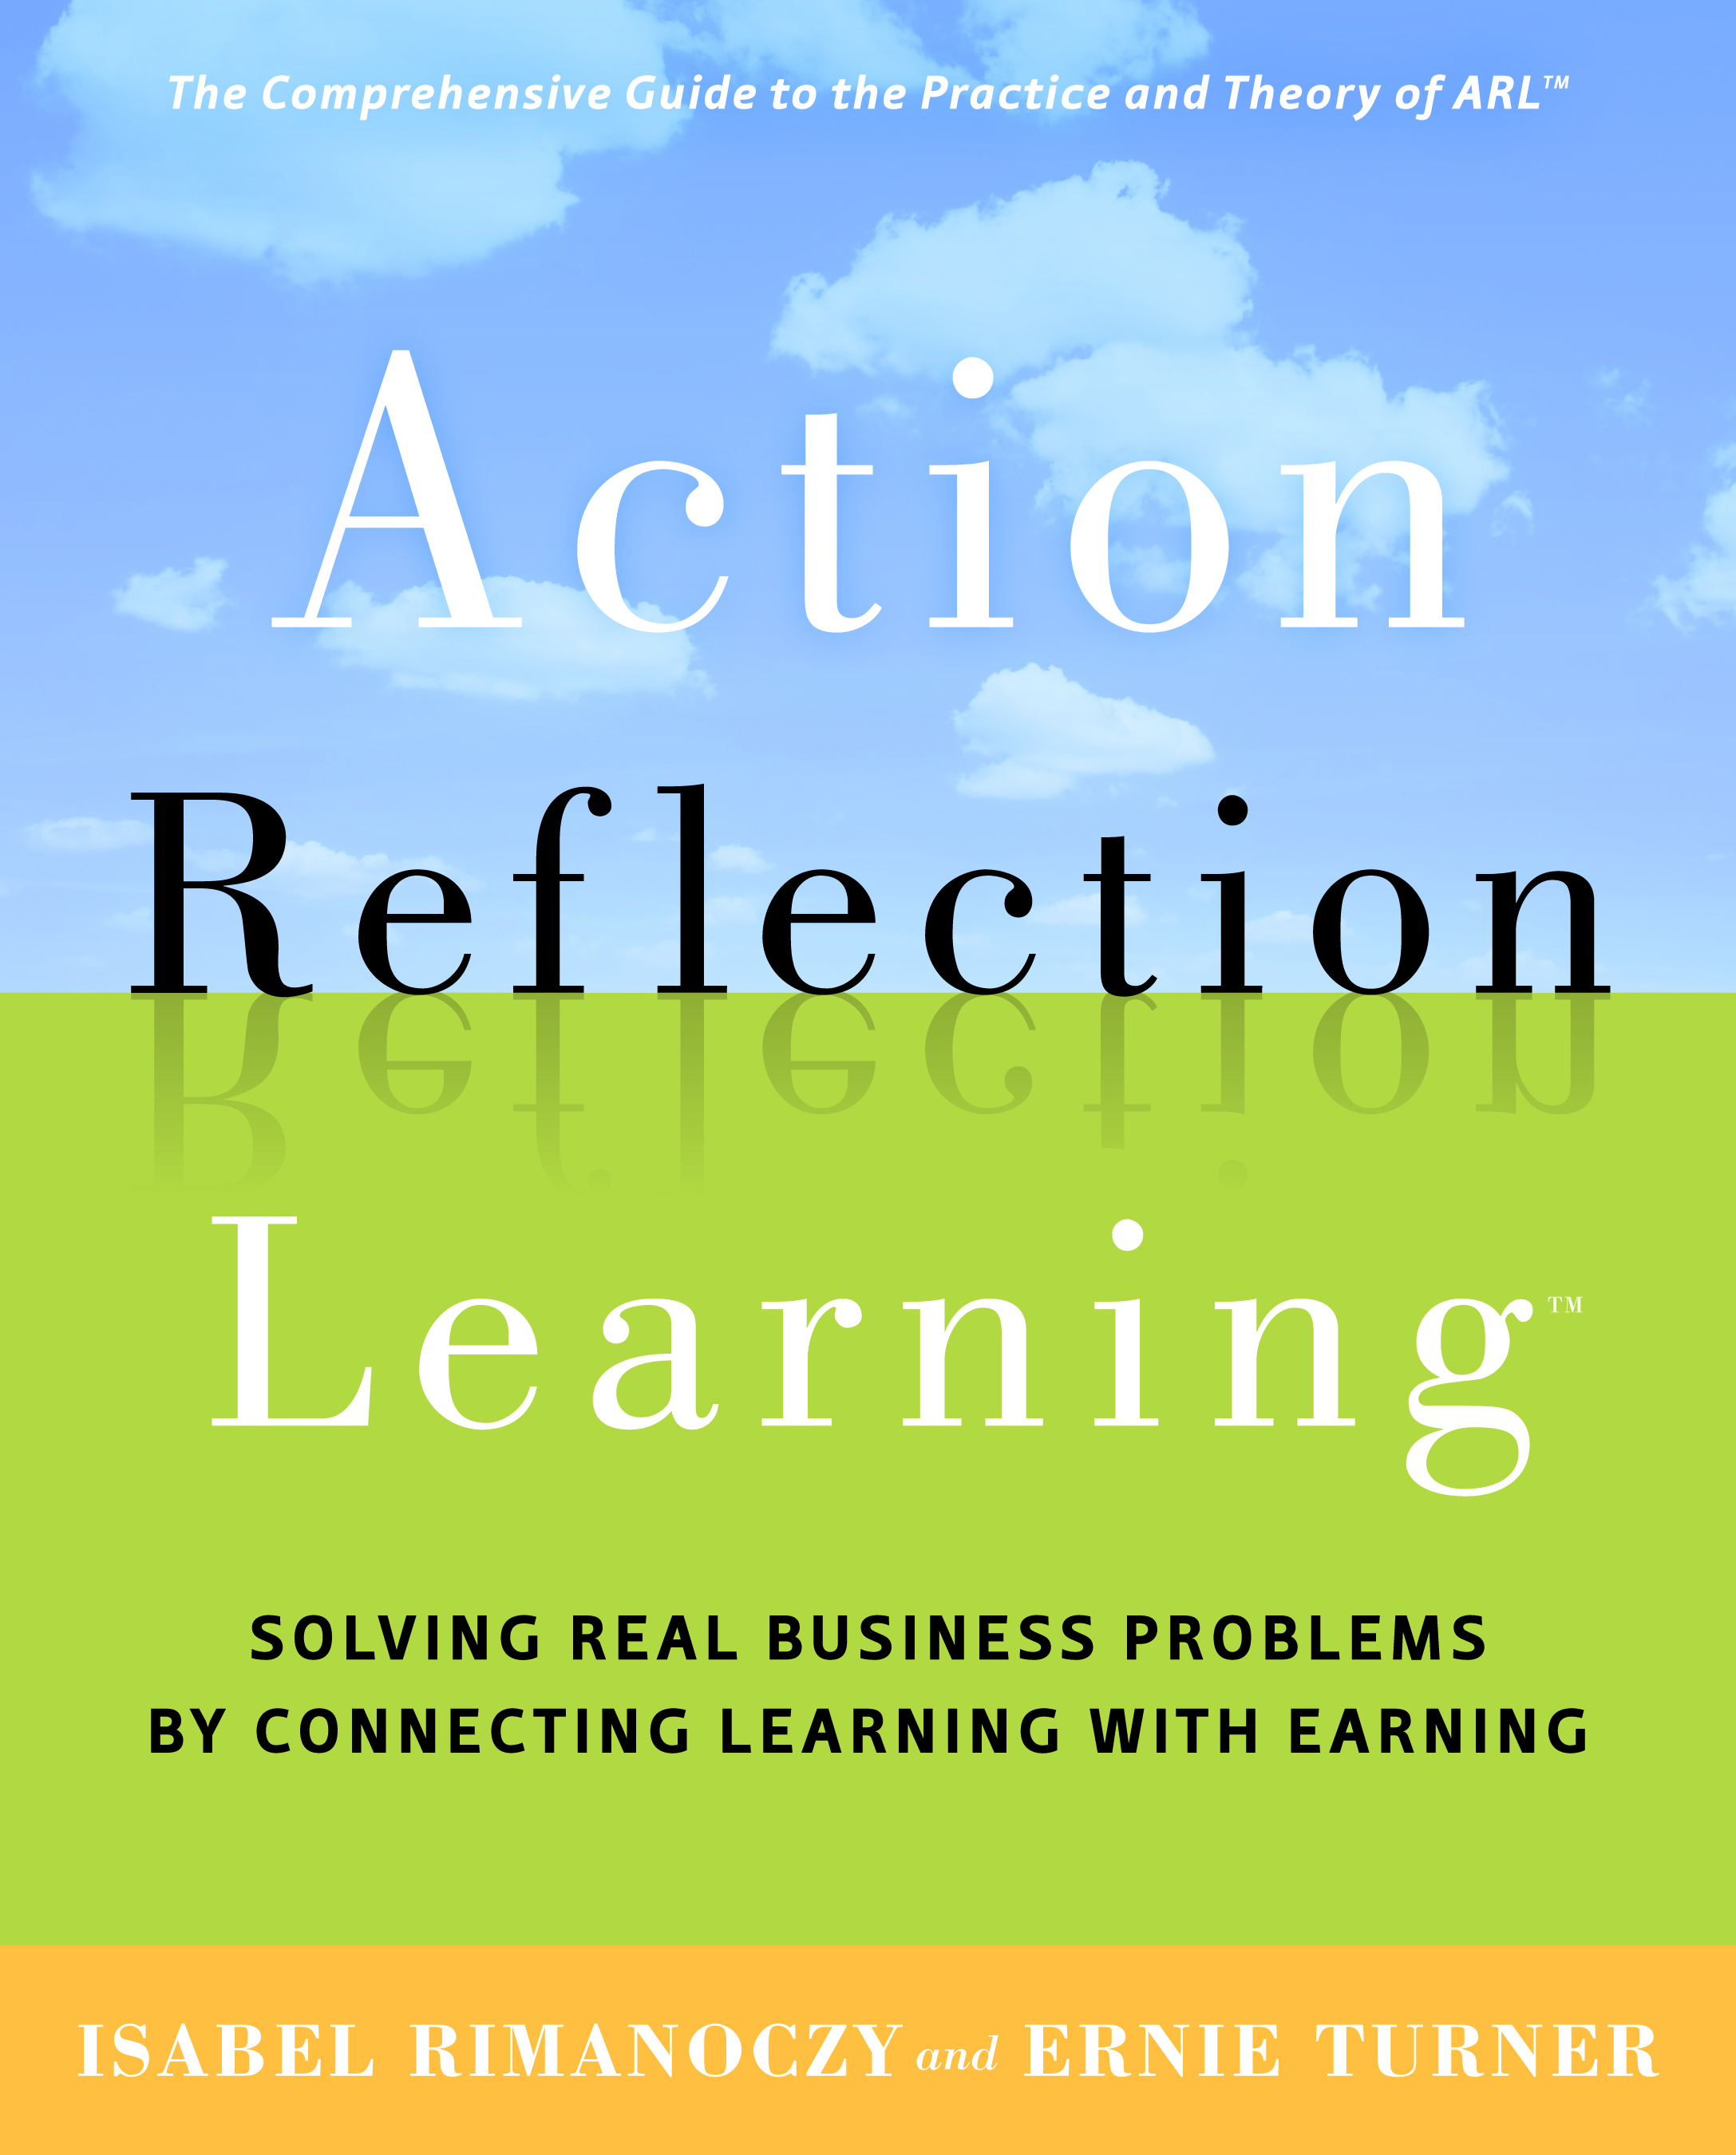 ActionReflectionLearning hi-res.jpg